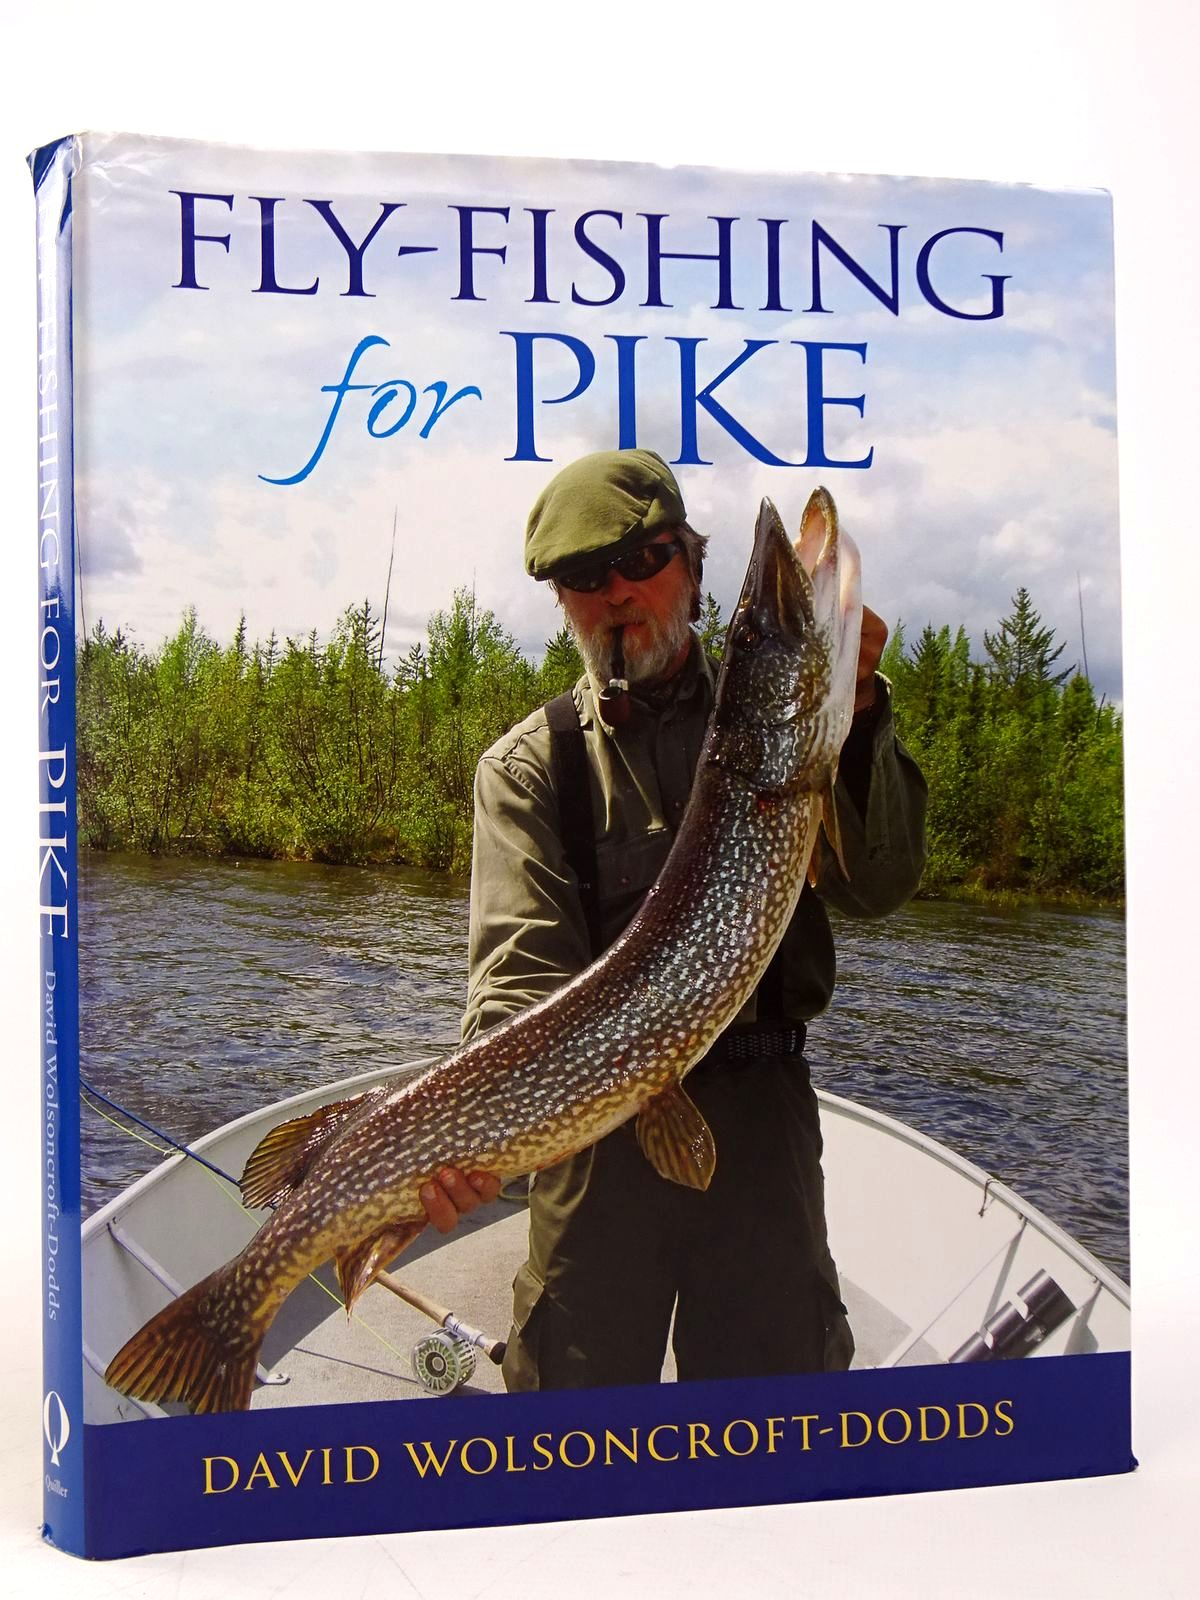 Photo of FLY-FISHING FOR PIKE written by Wolsoncroft-Dodds, David published by Quiller (STOCK CODE: 1817688)  for sale by Stella & Rose's Books